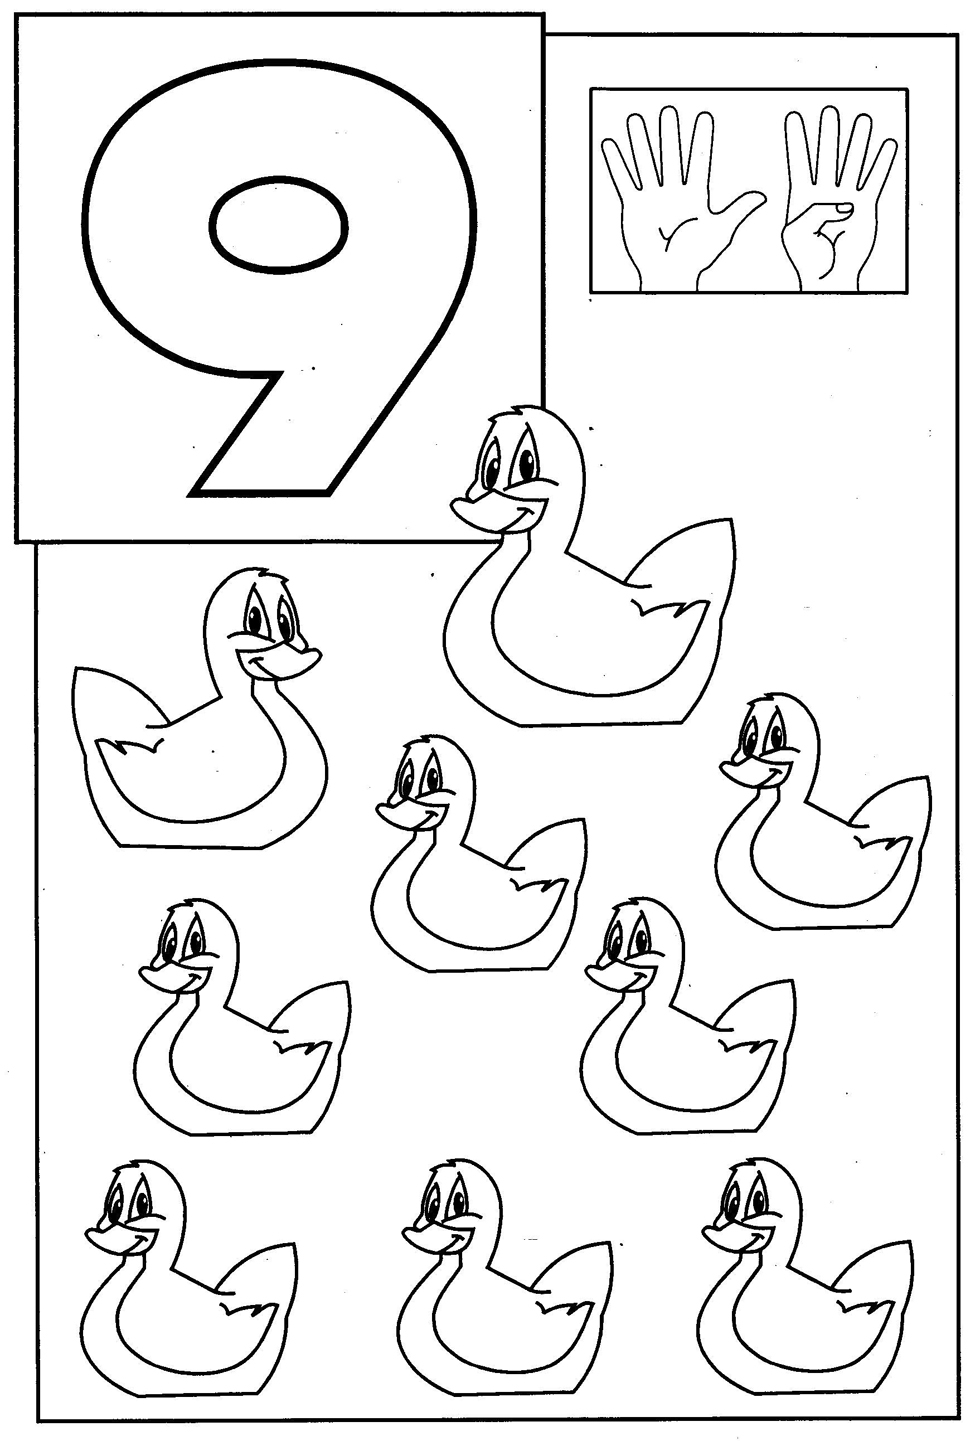 Toddler Coloring Pages | colouring sheets for toddlers